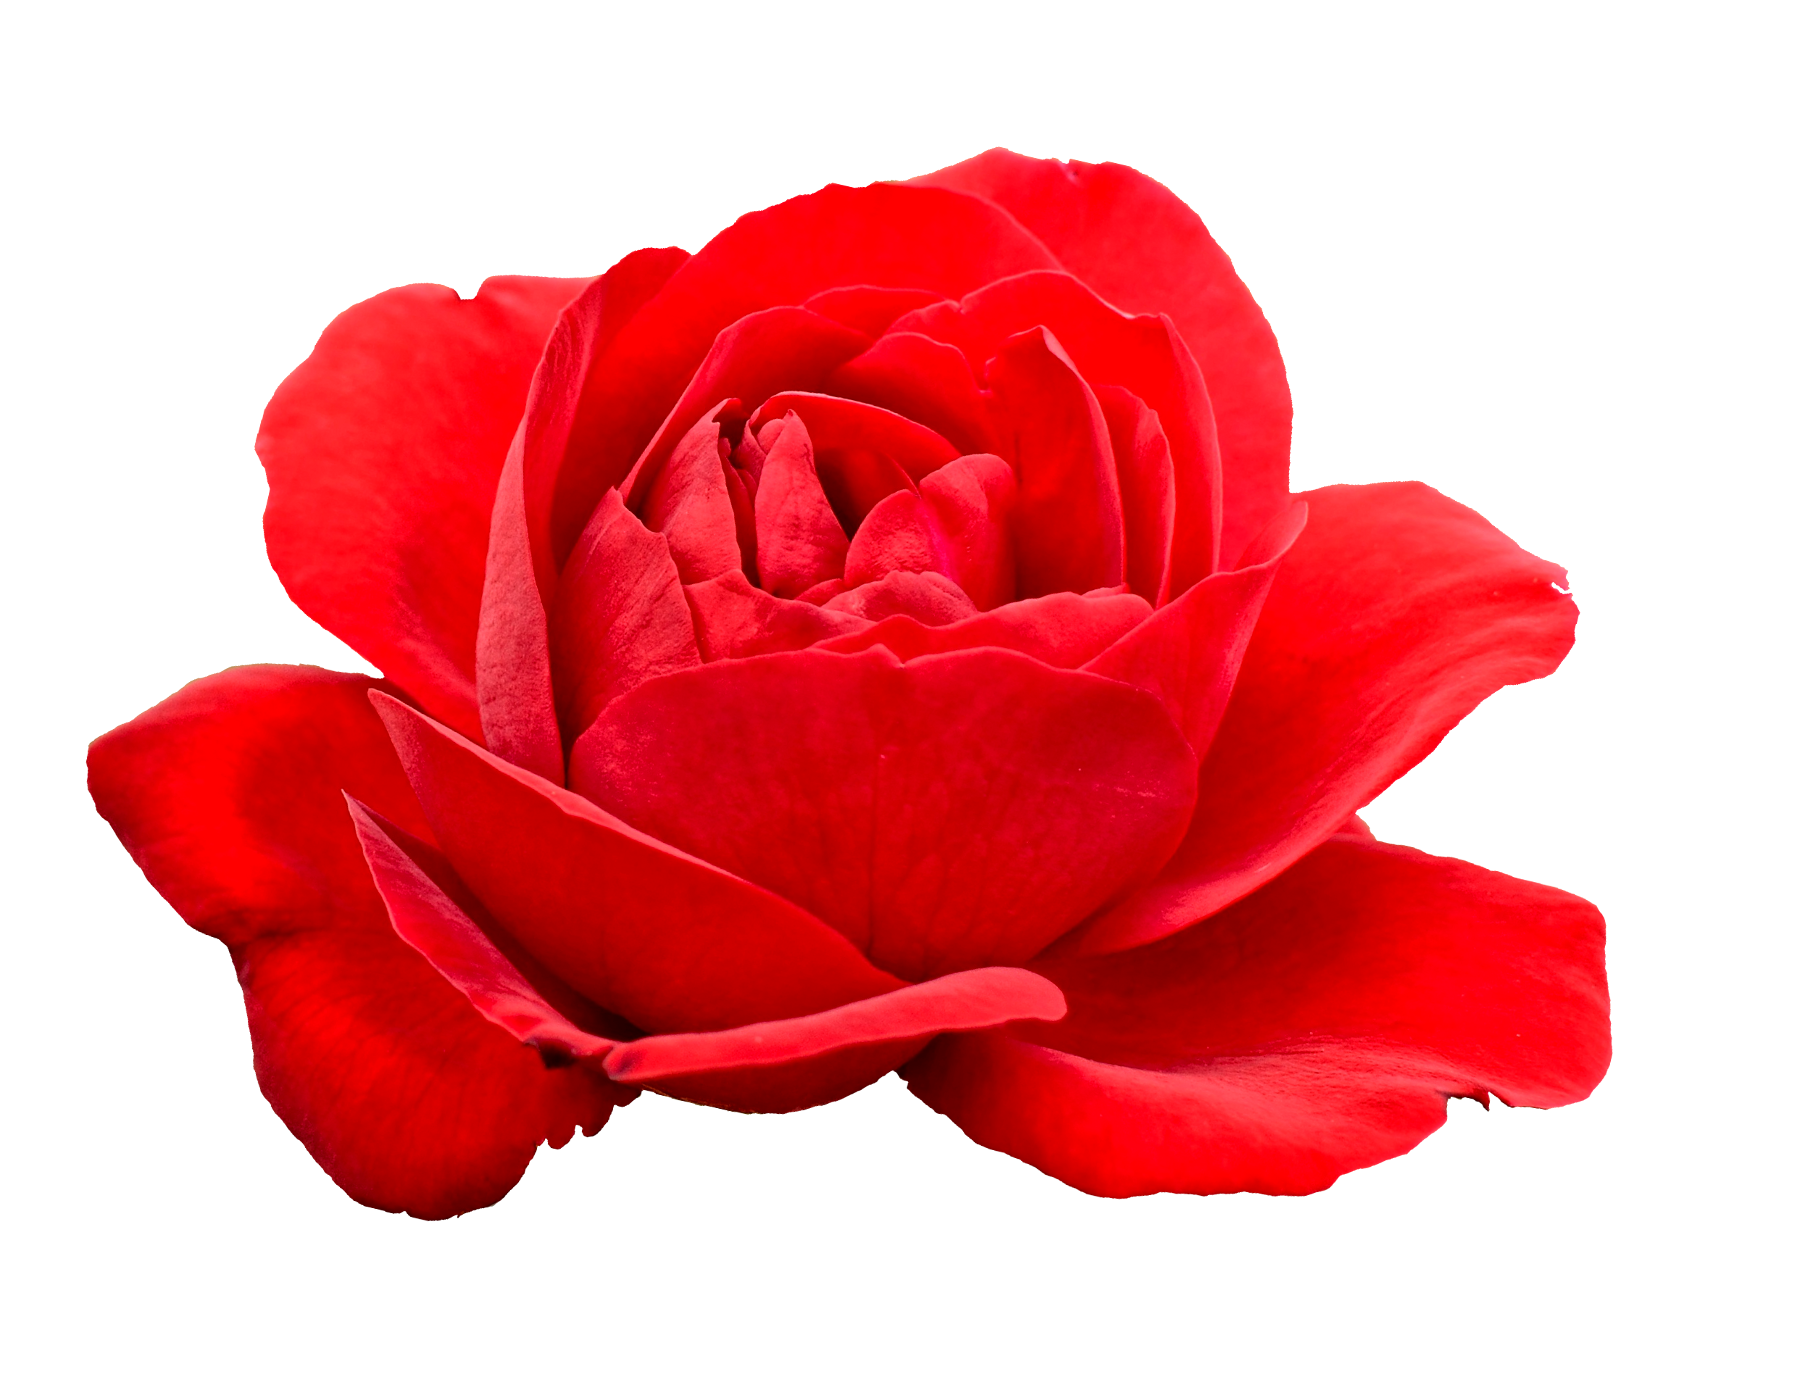 Flower icon clipart clip art royalty free library Red Rose Flower Icon Clipart - 16221 - TransparentPNG clip art royalty free library